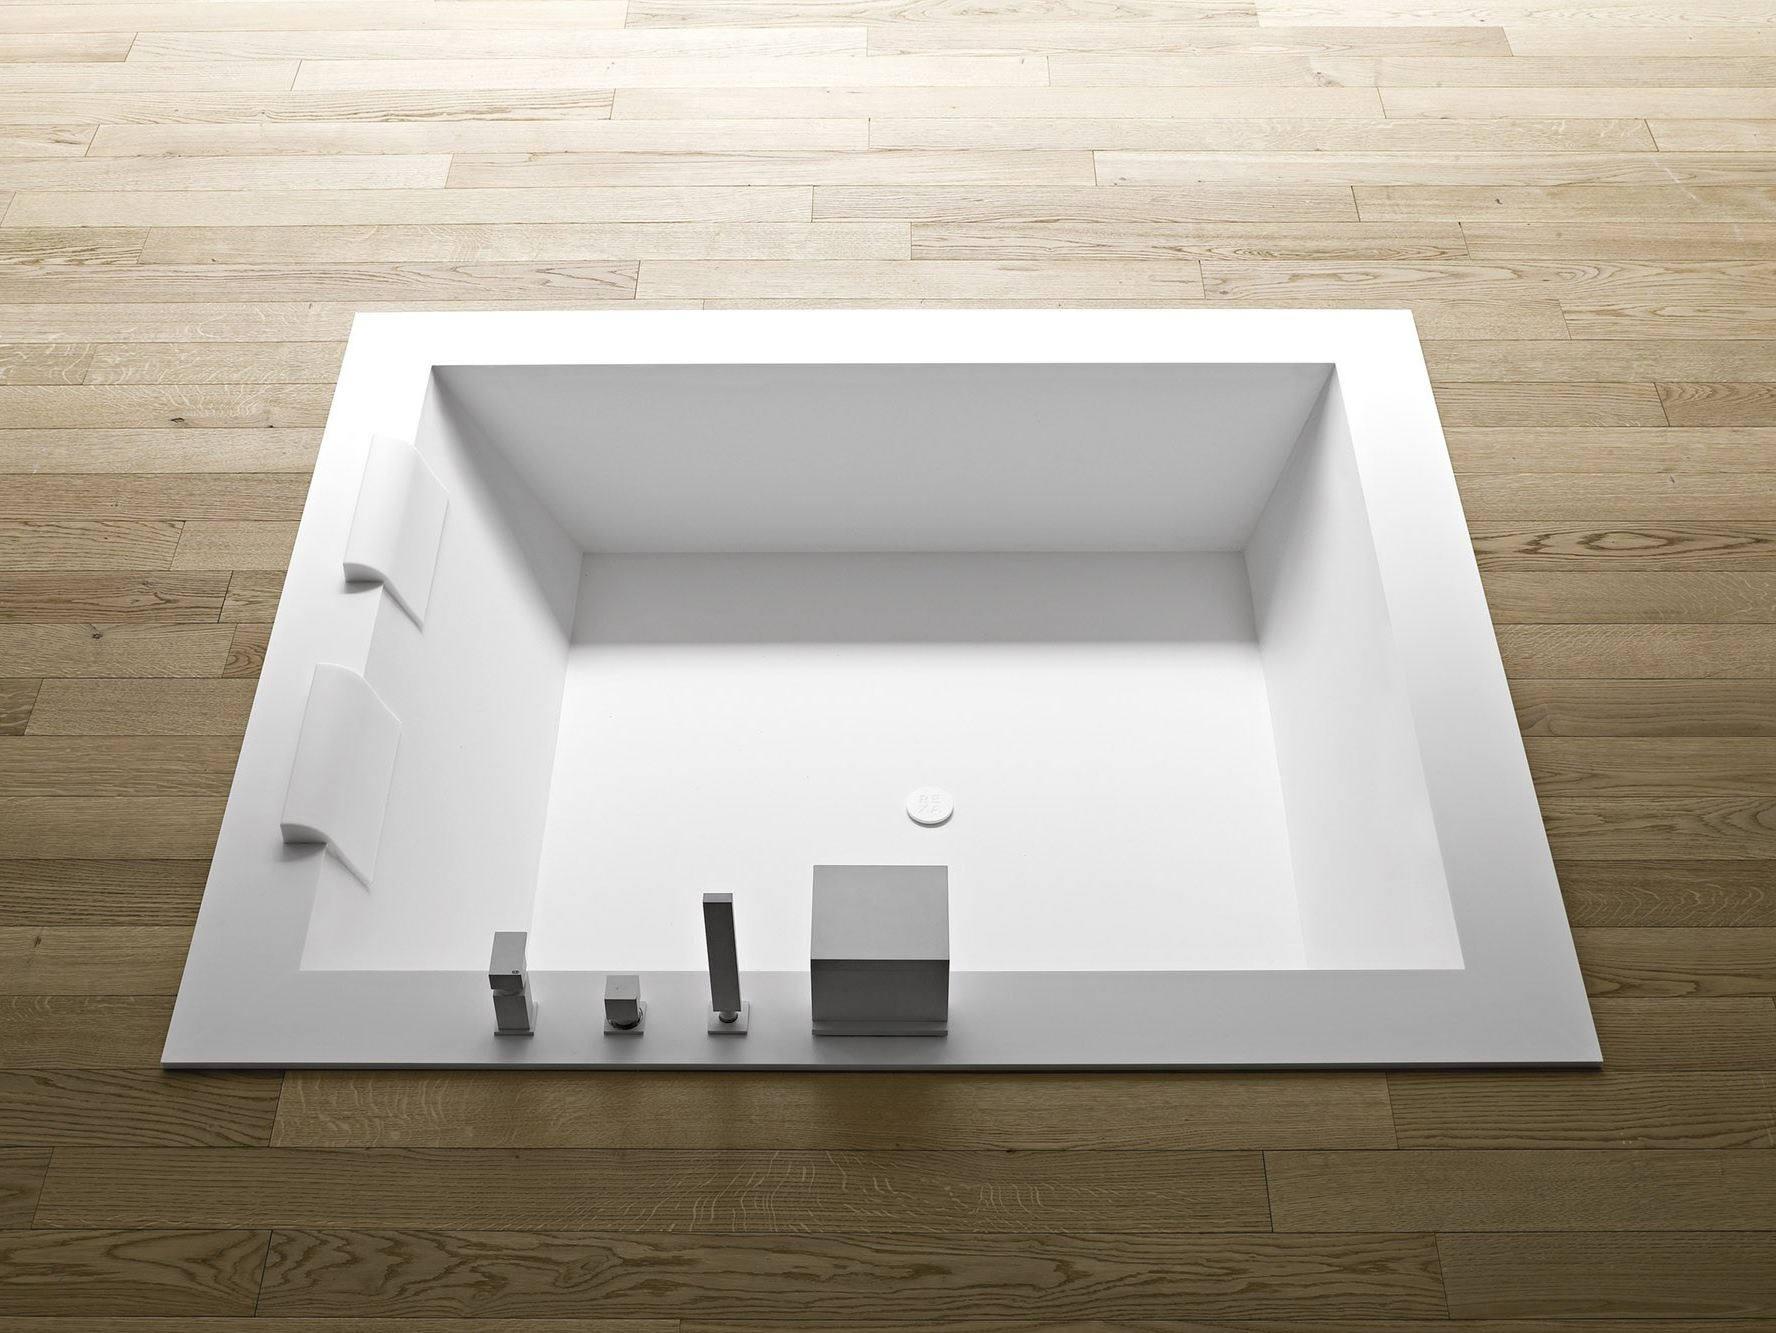 vasche da bagno quadrate archiproducts